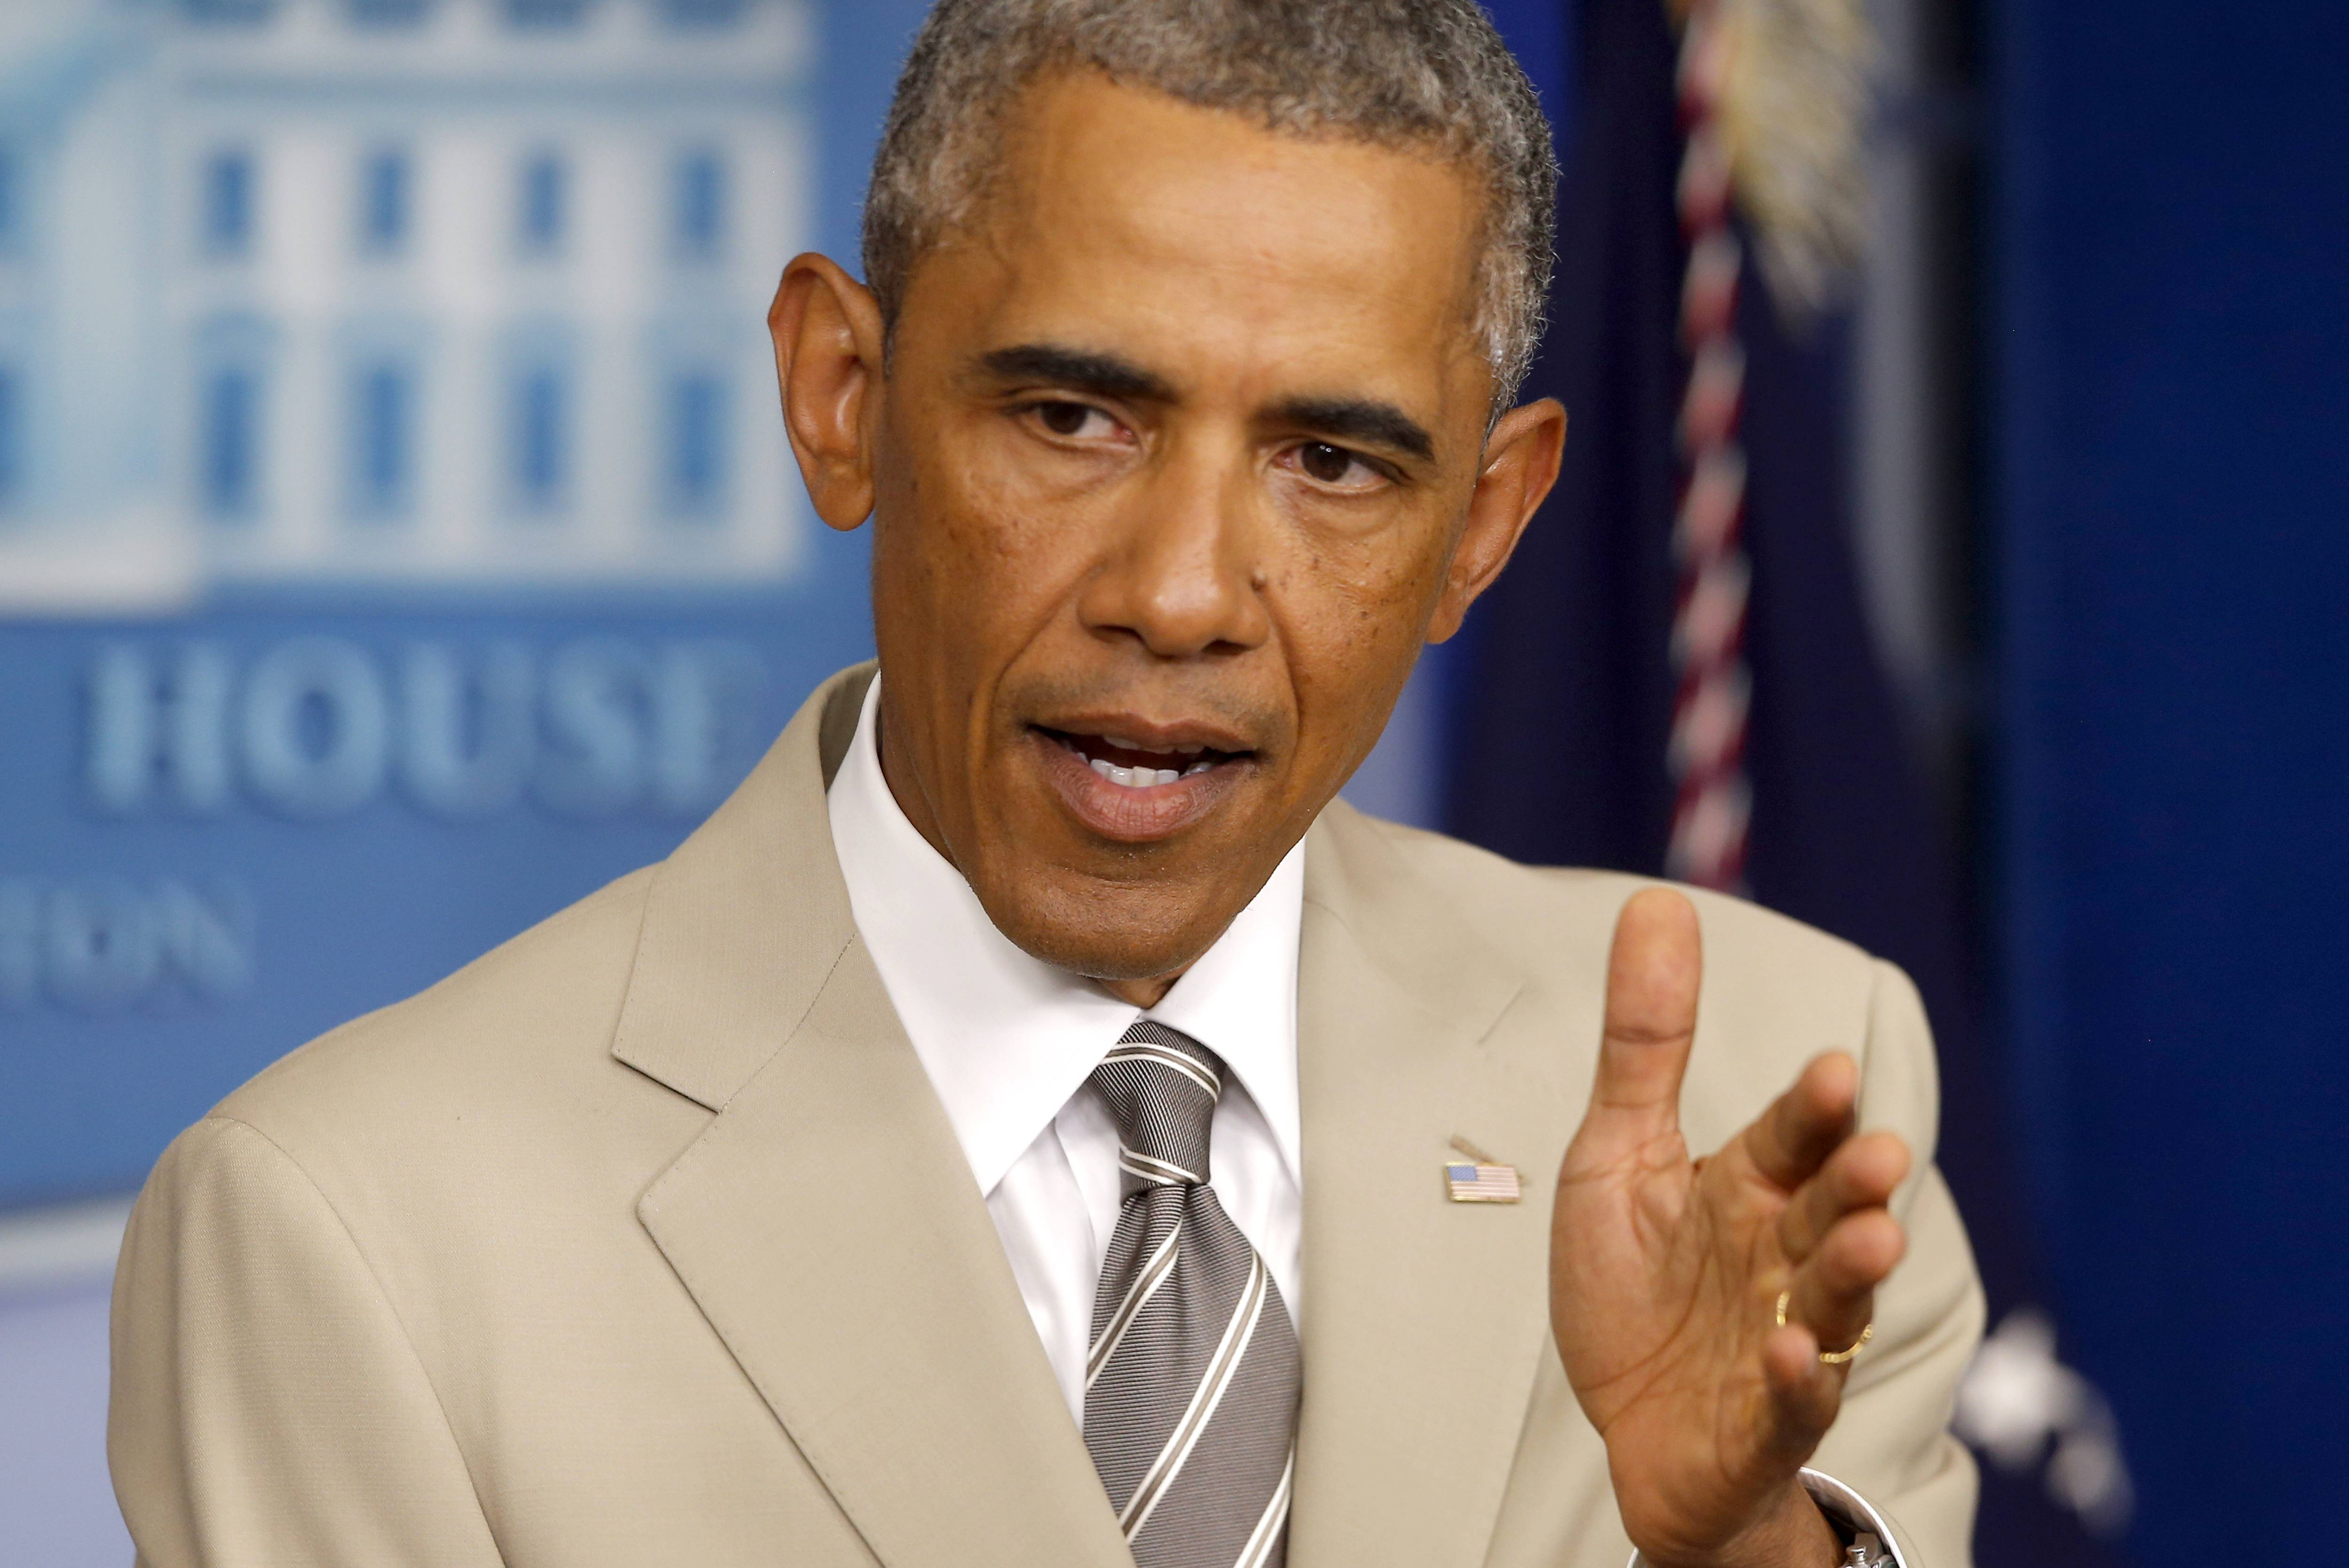 ASSOCIATED PRESS President Barack Obama addressed Syria, Ukraine, immigration and other topics Thursday at an appearance in the White House briefing room, but it was his choice of suits that first caught everyone's attention.